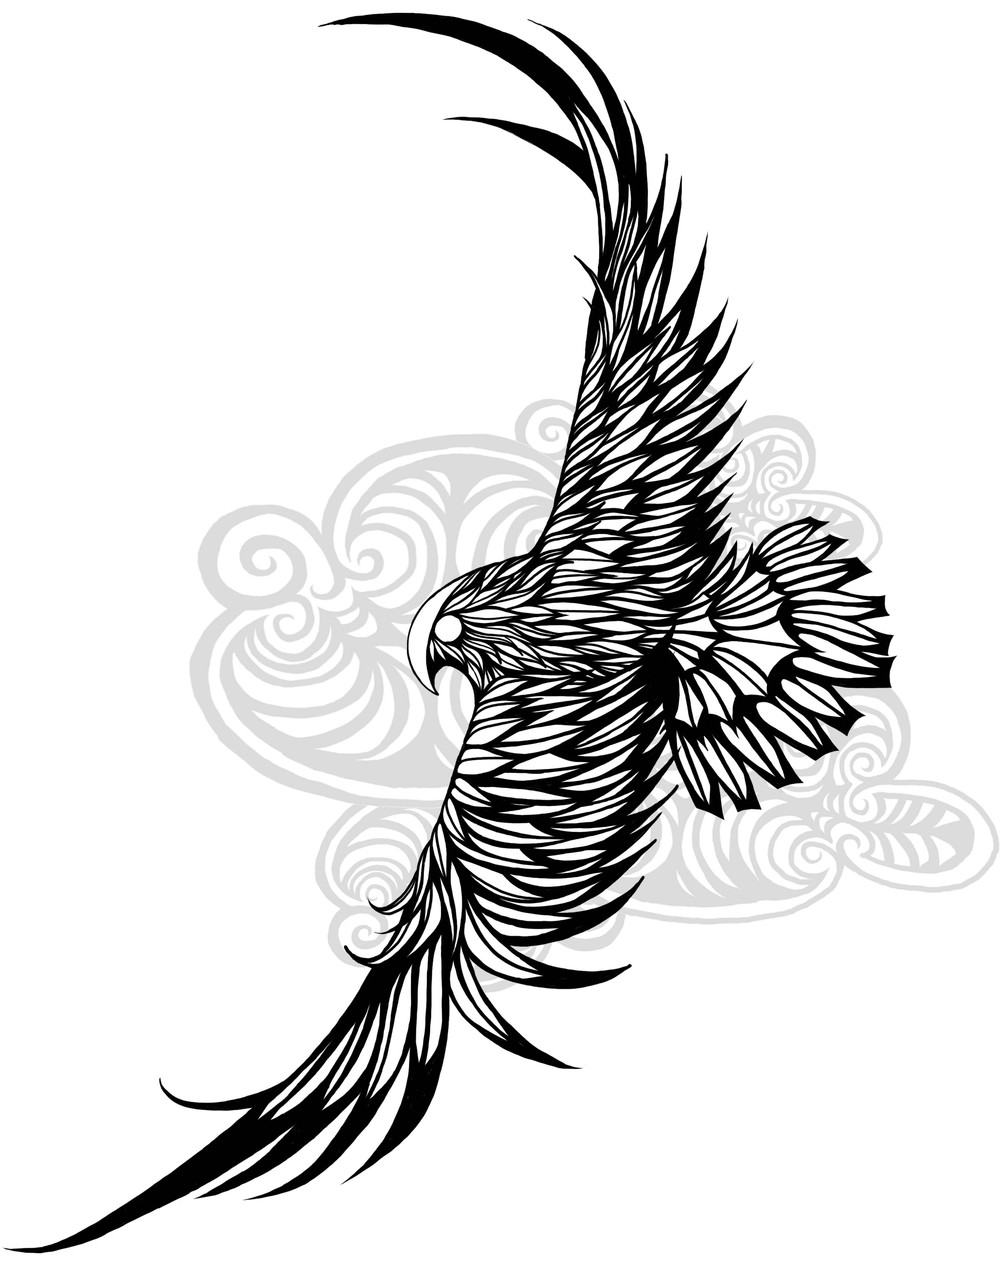 1000x1268 A Falcon Design I Created For My Latest Tattoo. Still Working